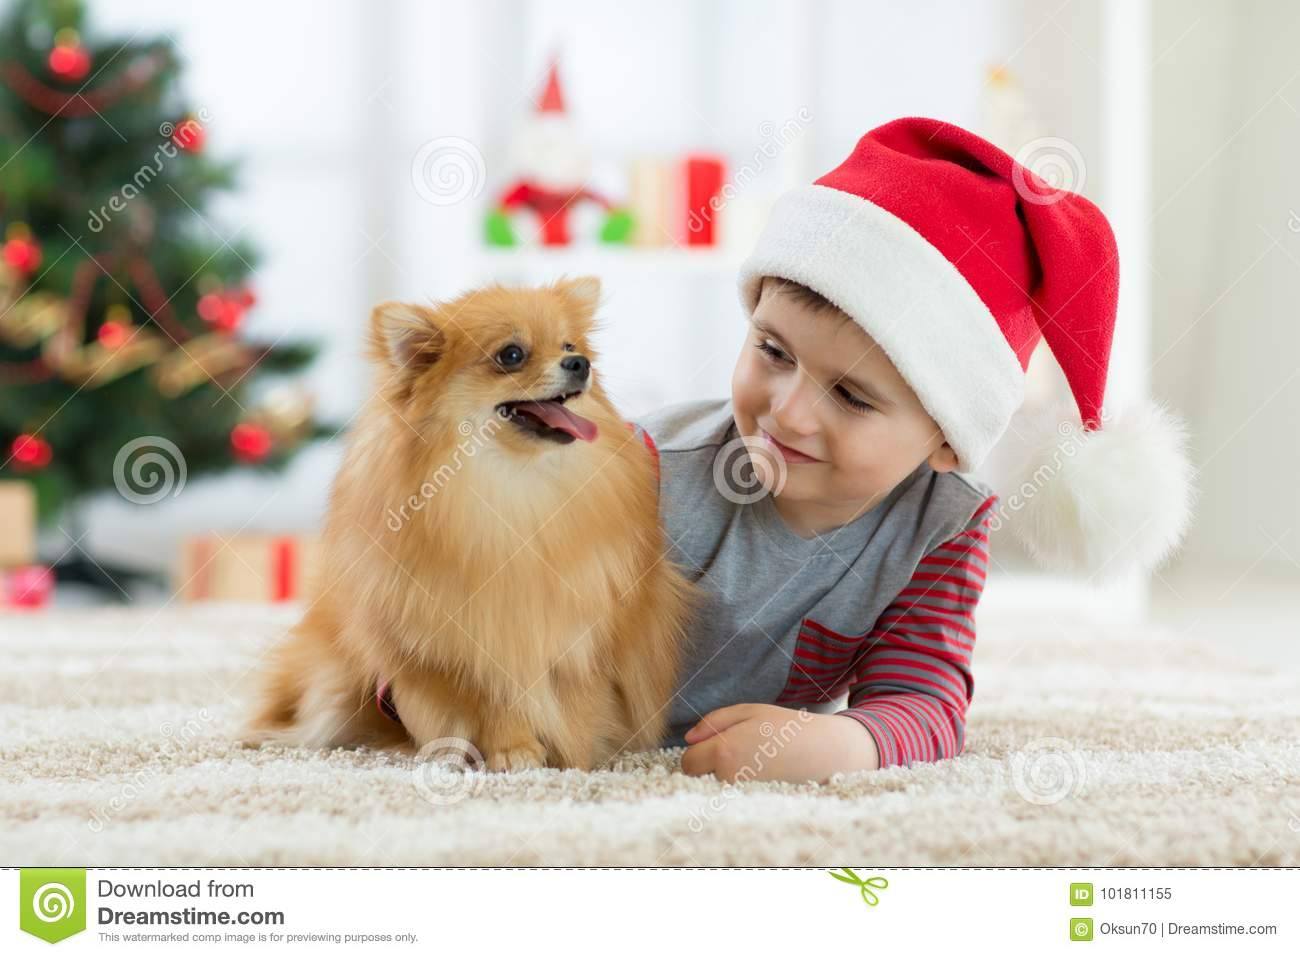 Happy kid little boy and dog as their gift at Christmas. Christmas interior